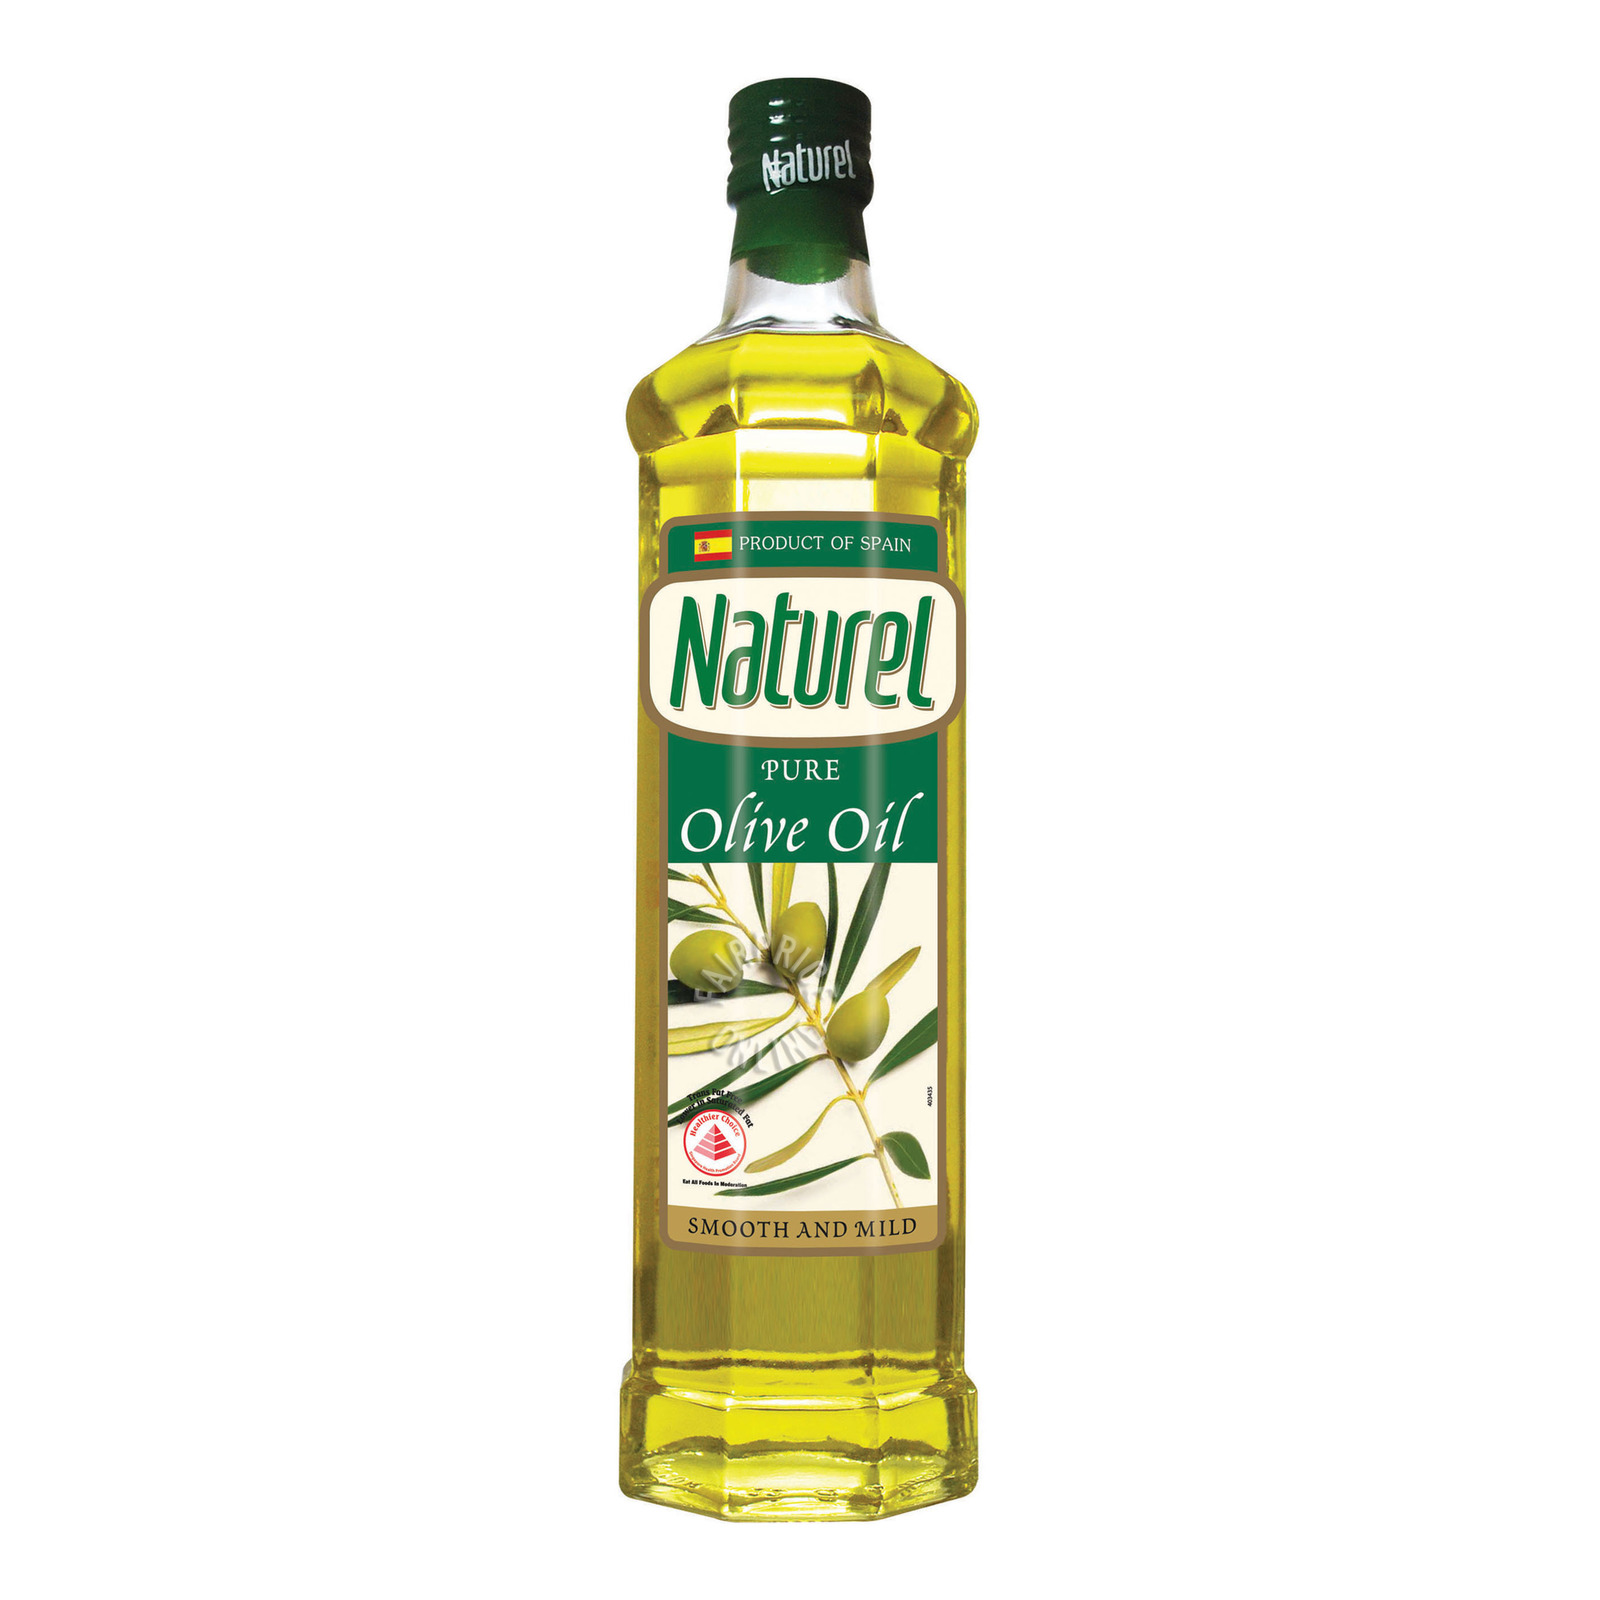 Naturel Olive Oil - Pure